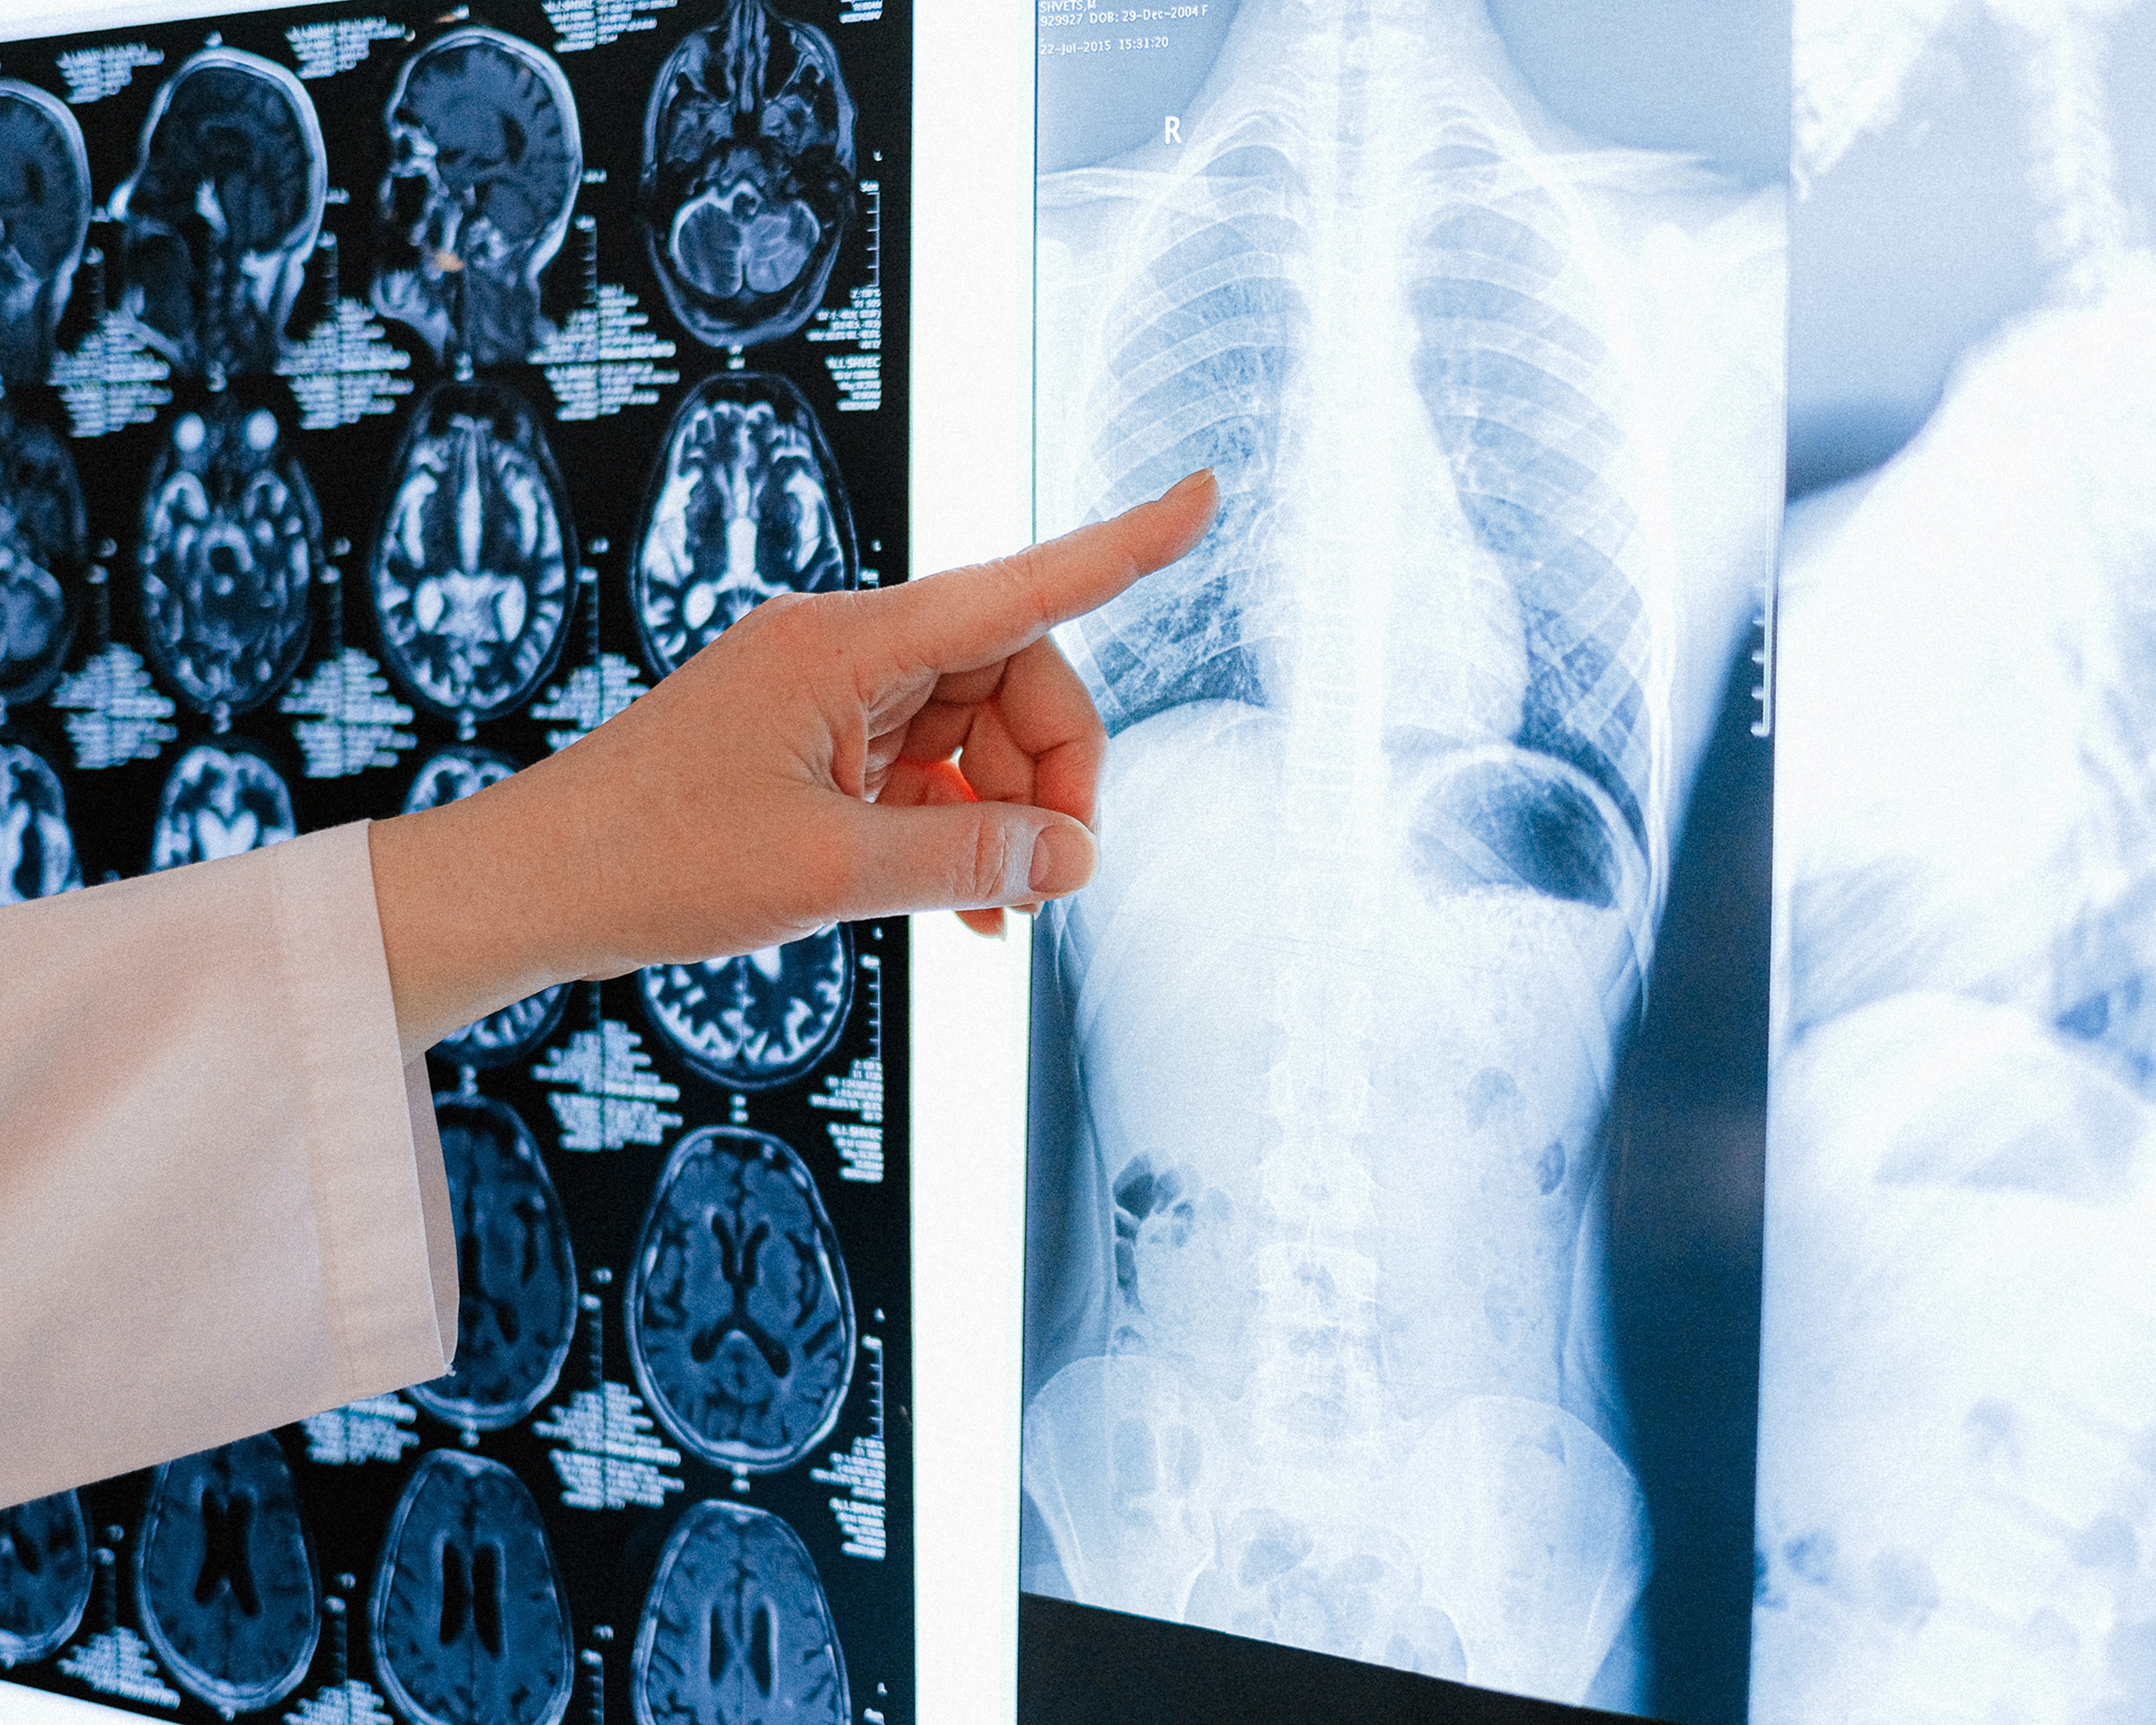 Doctor wearing a white coat pointing to a spinal x-ray - Spitzer Legal Serious Injury Practice Area